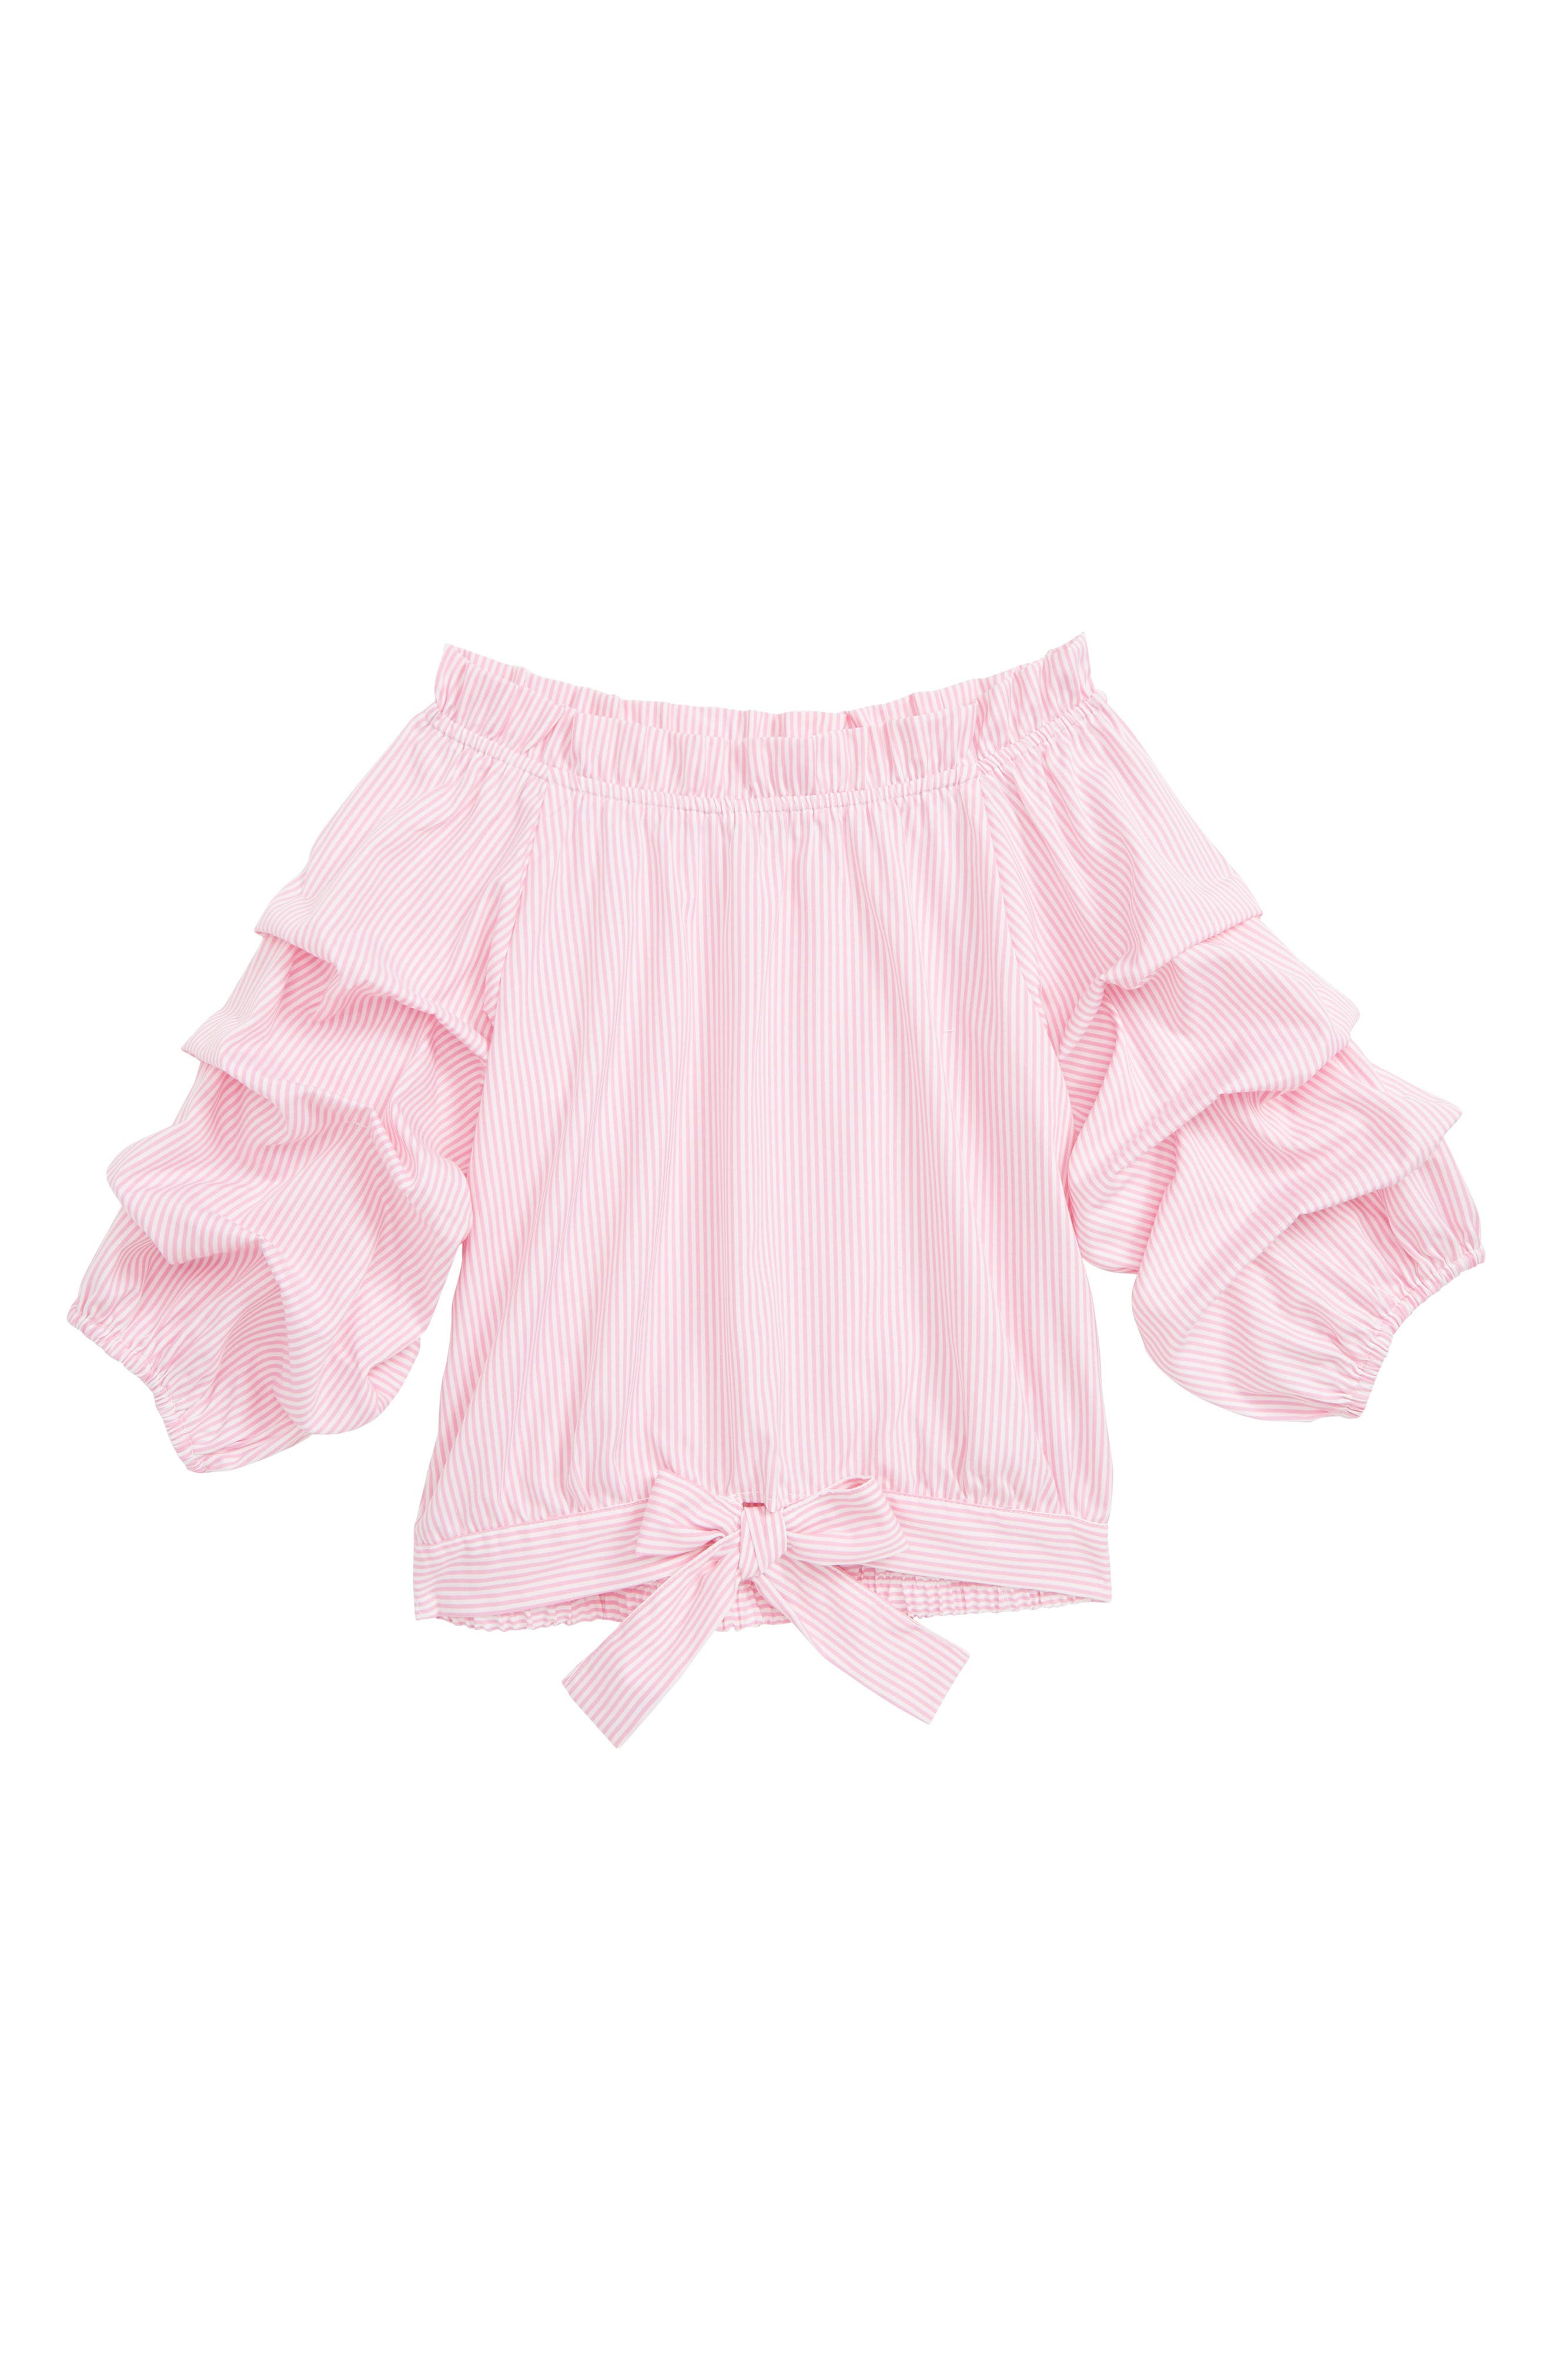 a913fe31 Girls' Tops & Tees Clothing and Accessories | Nordstrom